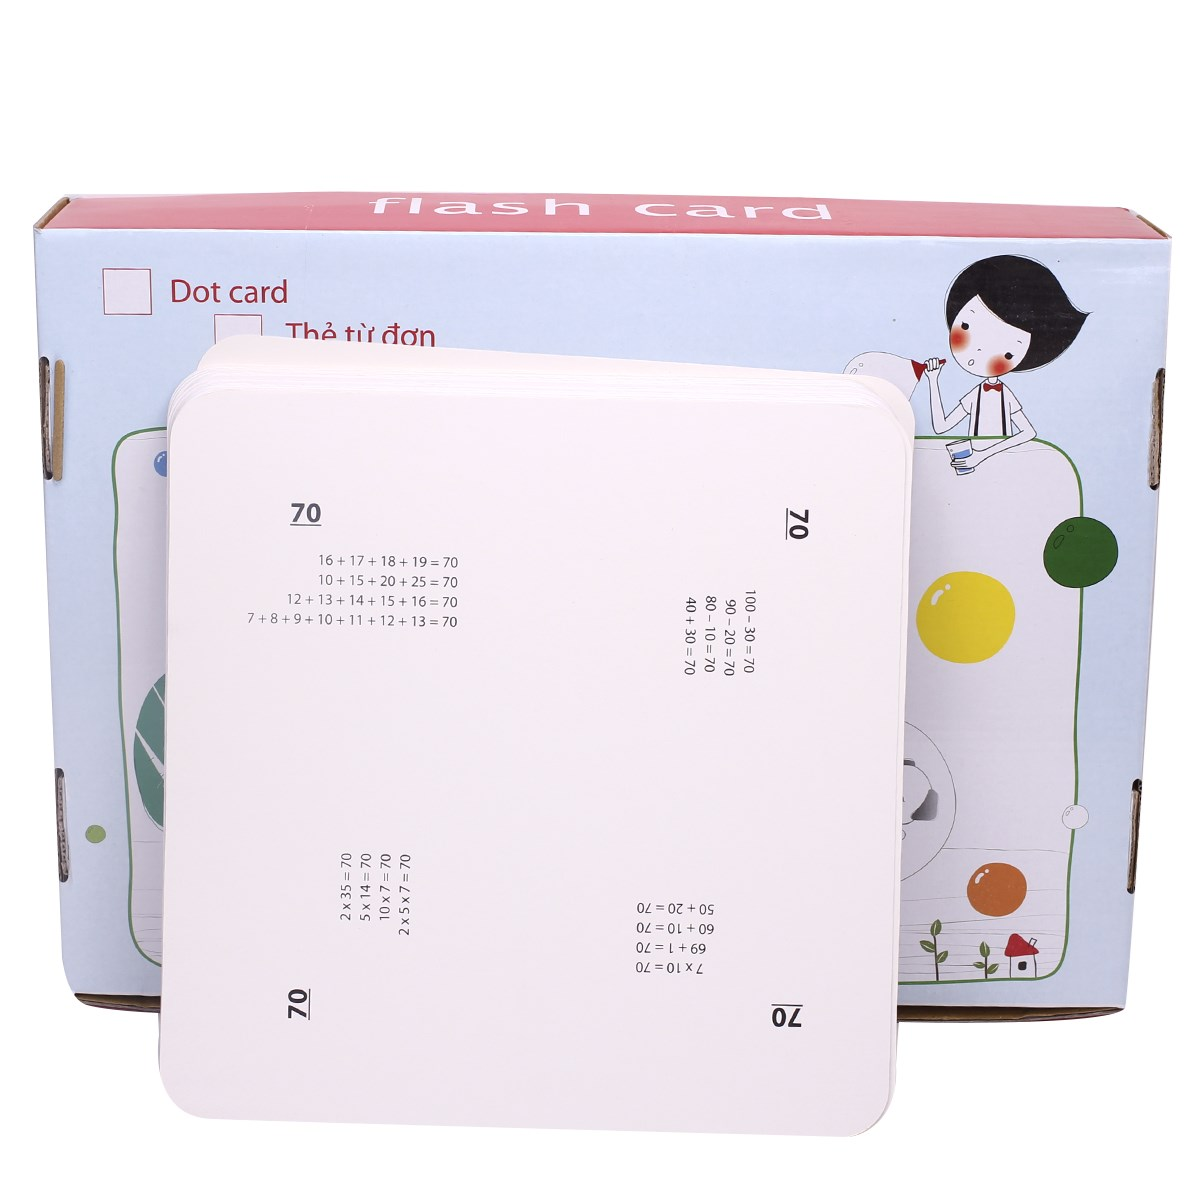 Dot card cham gom 108 the